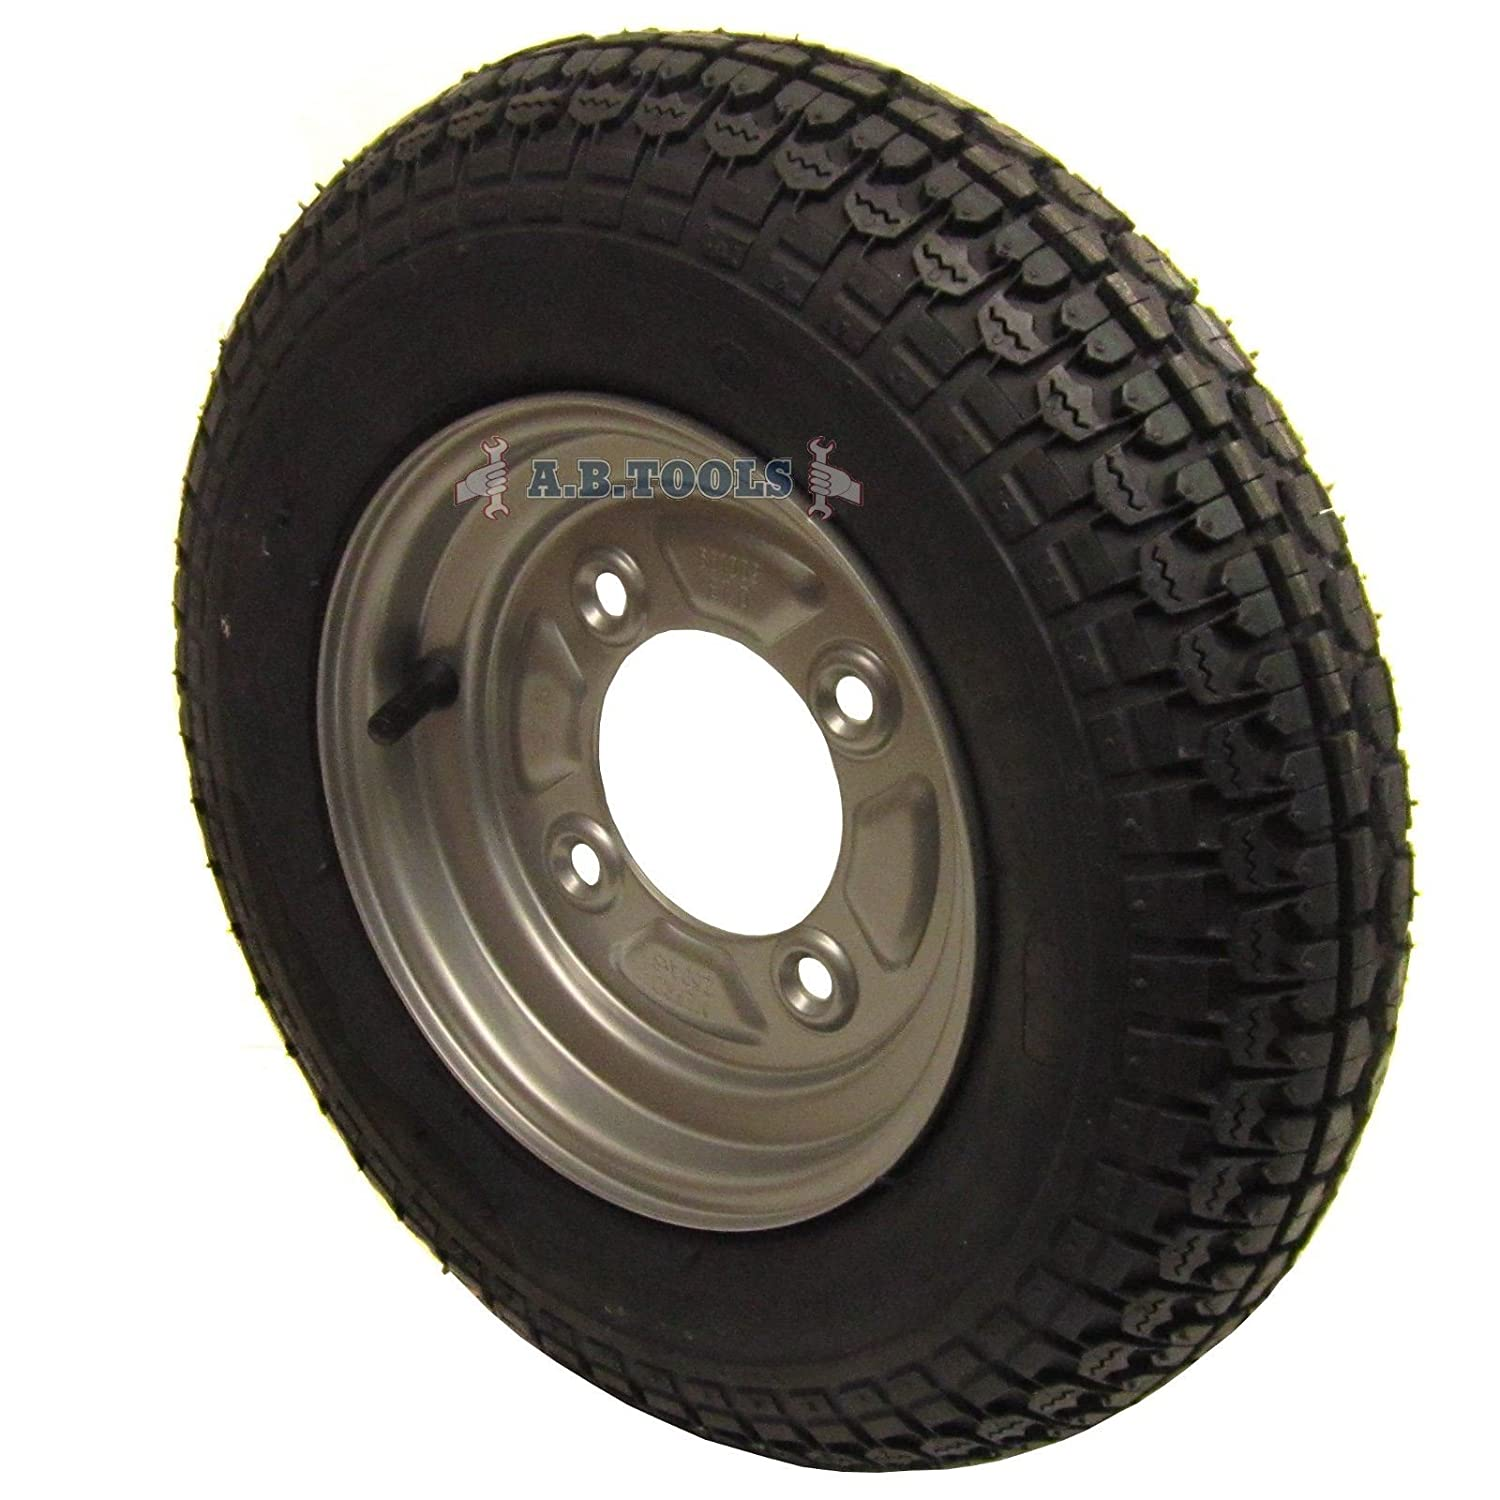 Trailer Wheel & Tyre 3.50-8 with 115mm PCD for Erde, Daxara 4 PLY TRSP12 AB Tools